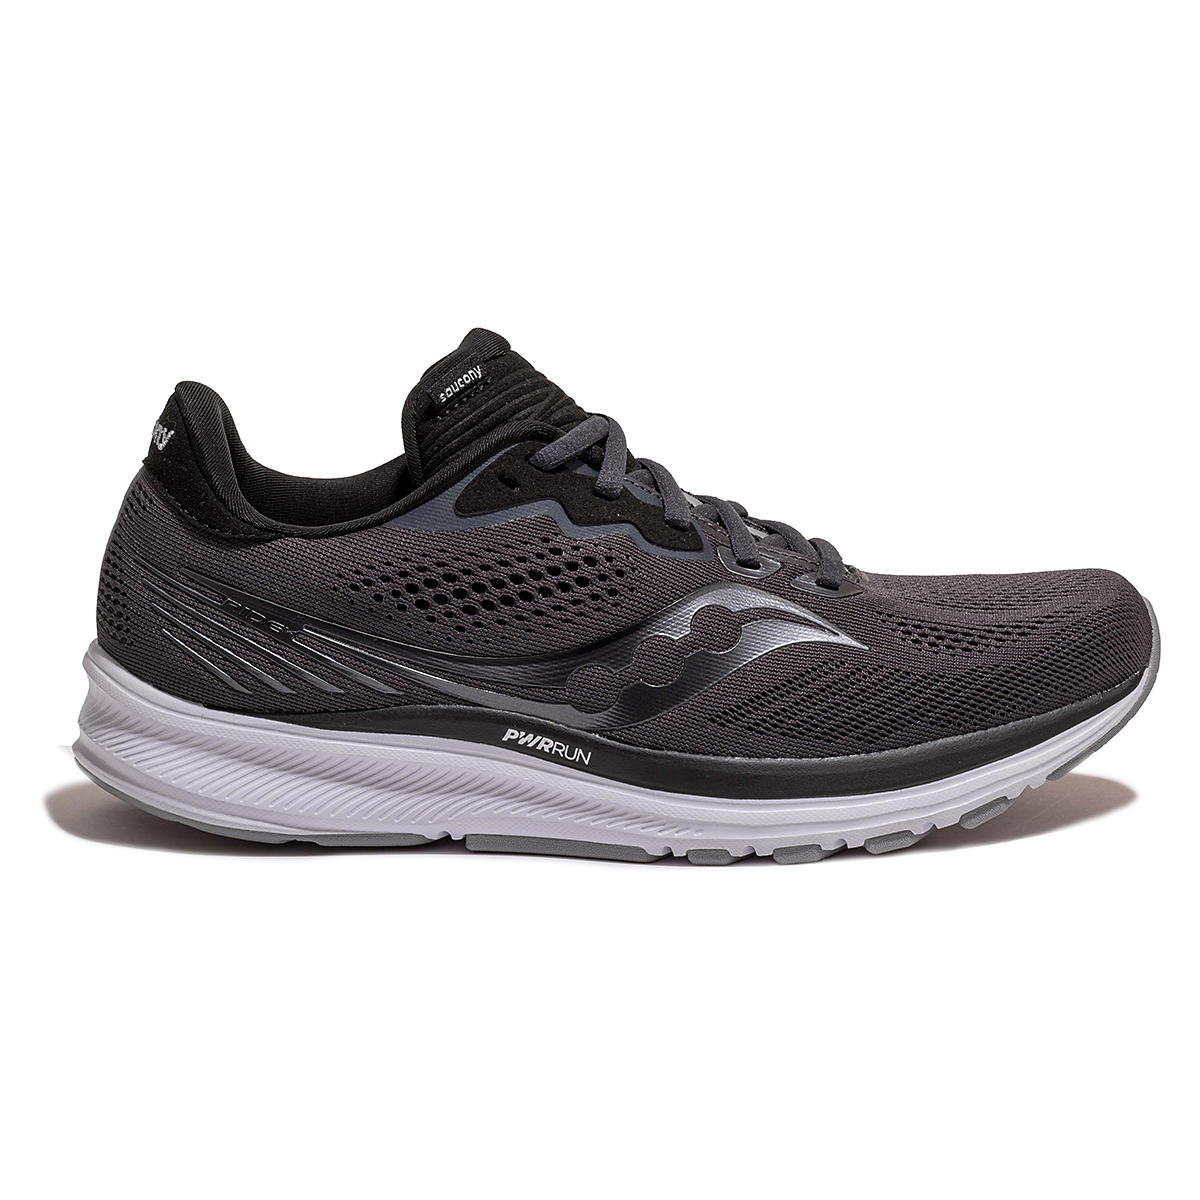 Men's Saucony Ride 14 Running Shoe - Color: Charcoal/Black - Size: 7 - Width: Wide, Charcoal/Black, large, image 1